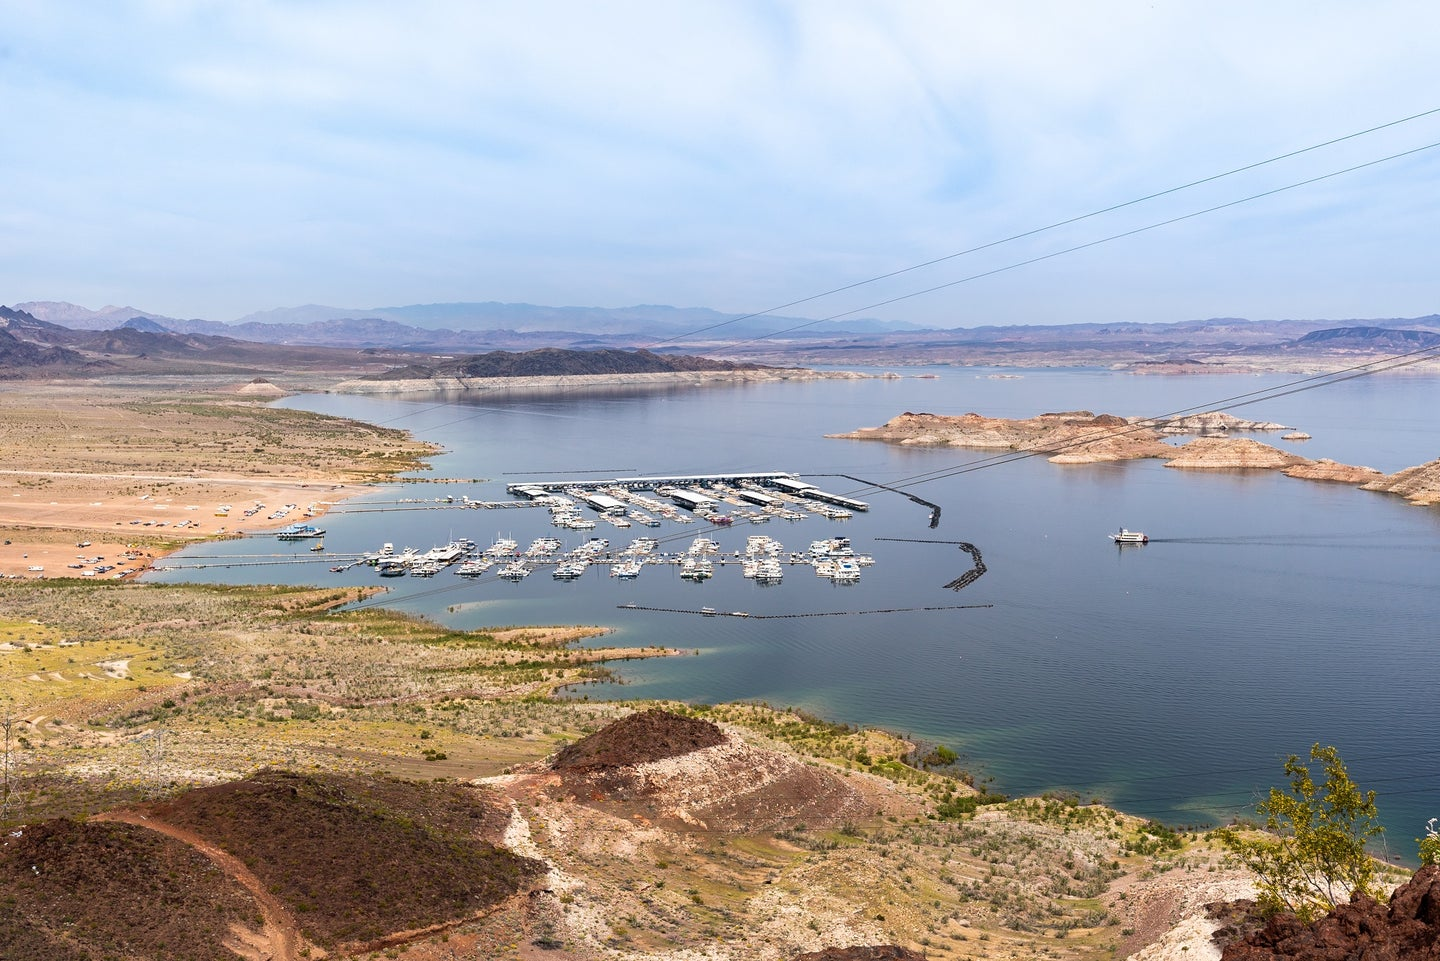 Lake Mead low water levels on the Colorado River